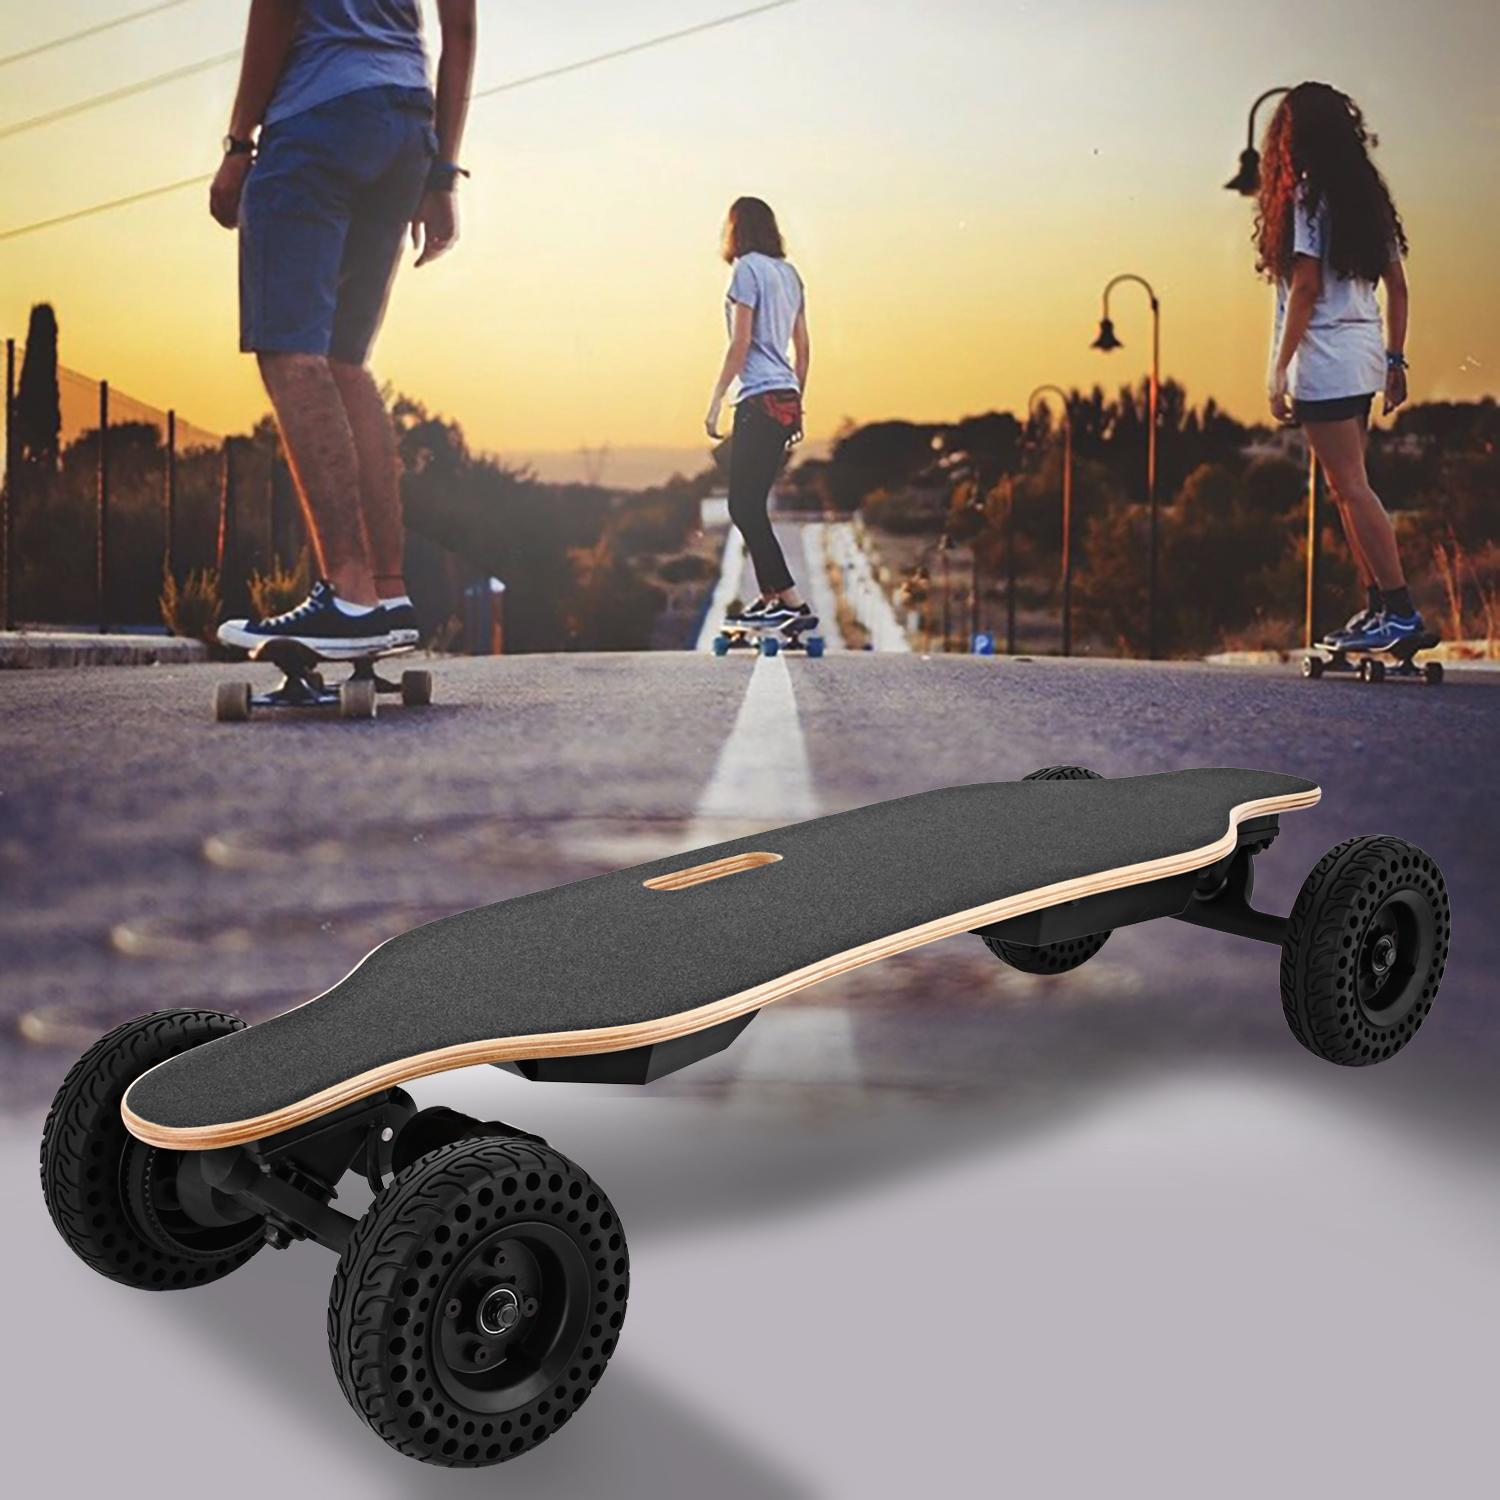 Kimimart Adult 37 Inch Electric Skateboard E400, 1800W Dual Motors 22 MPH 13 Mile Range Motorized Longboard... by